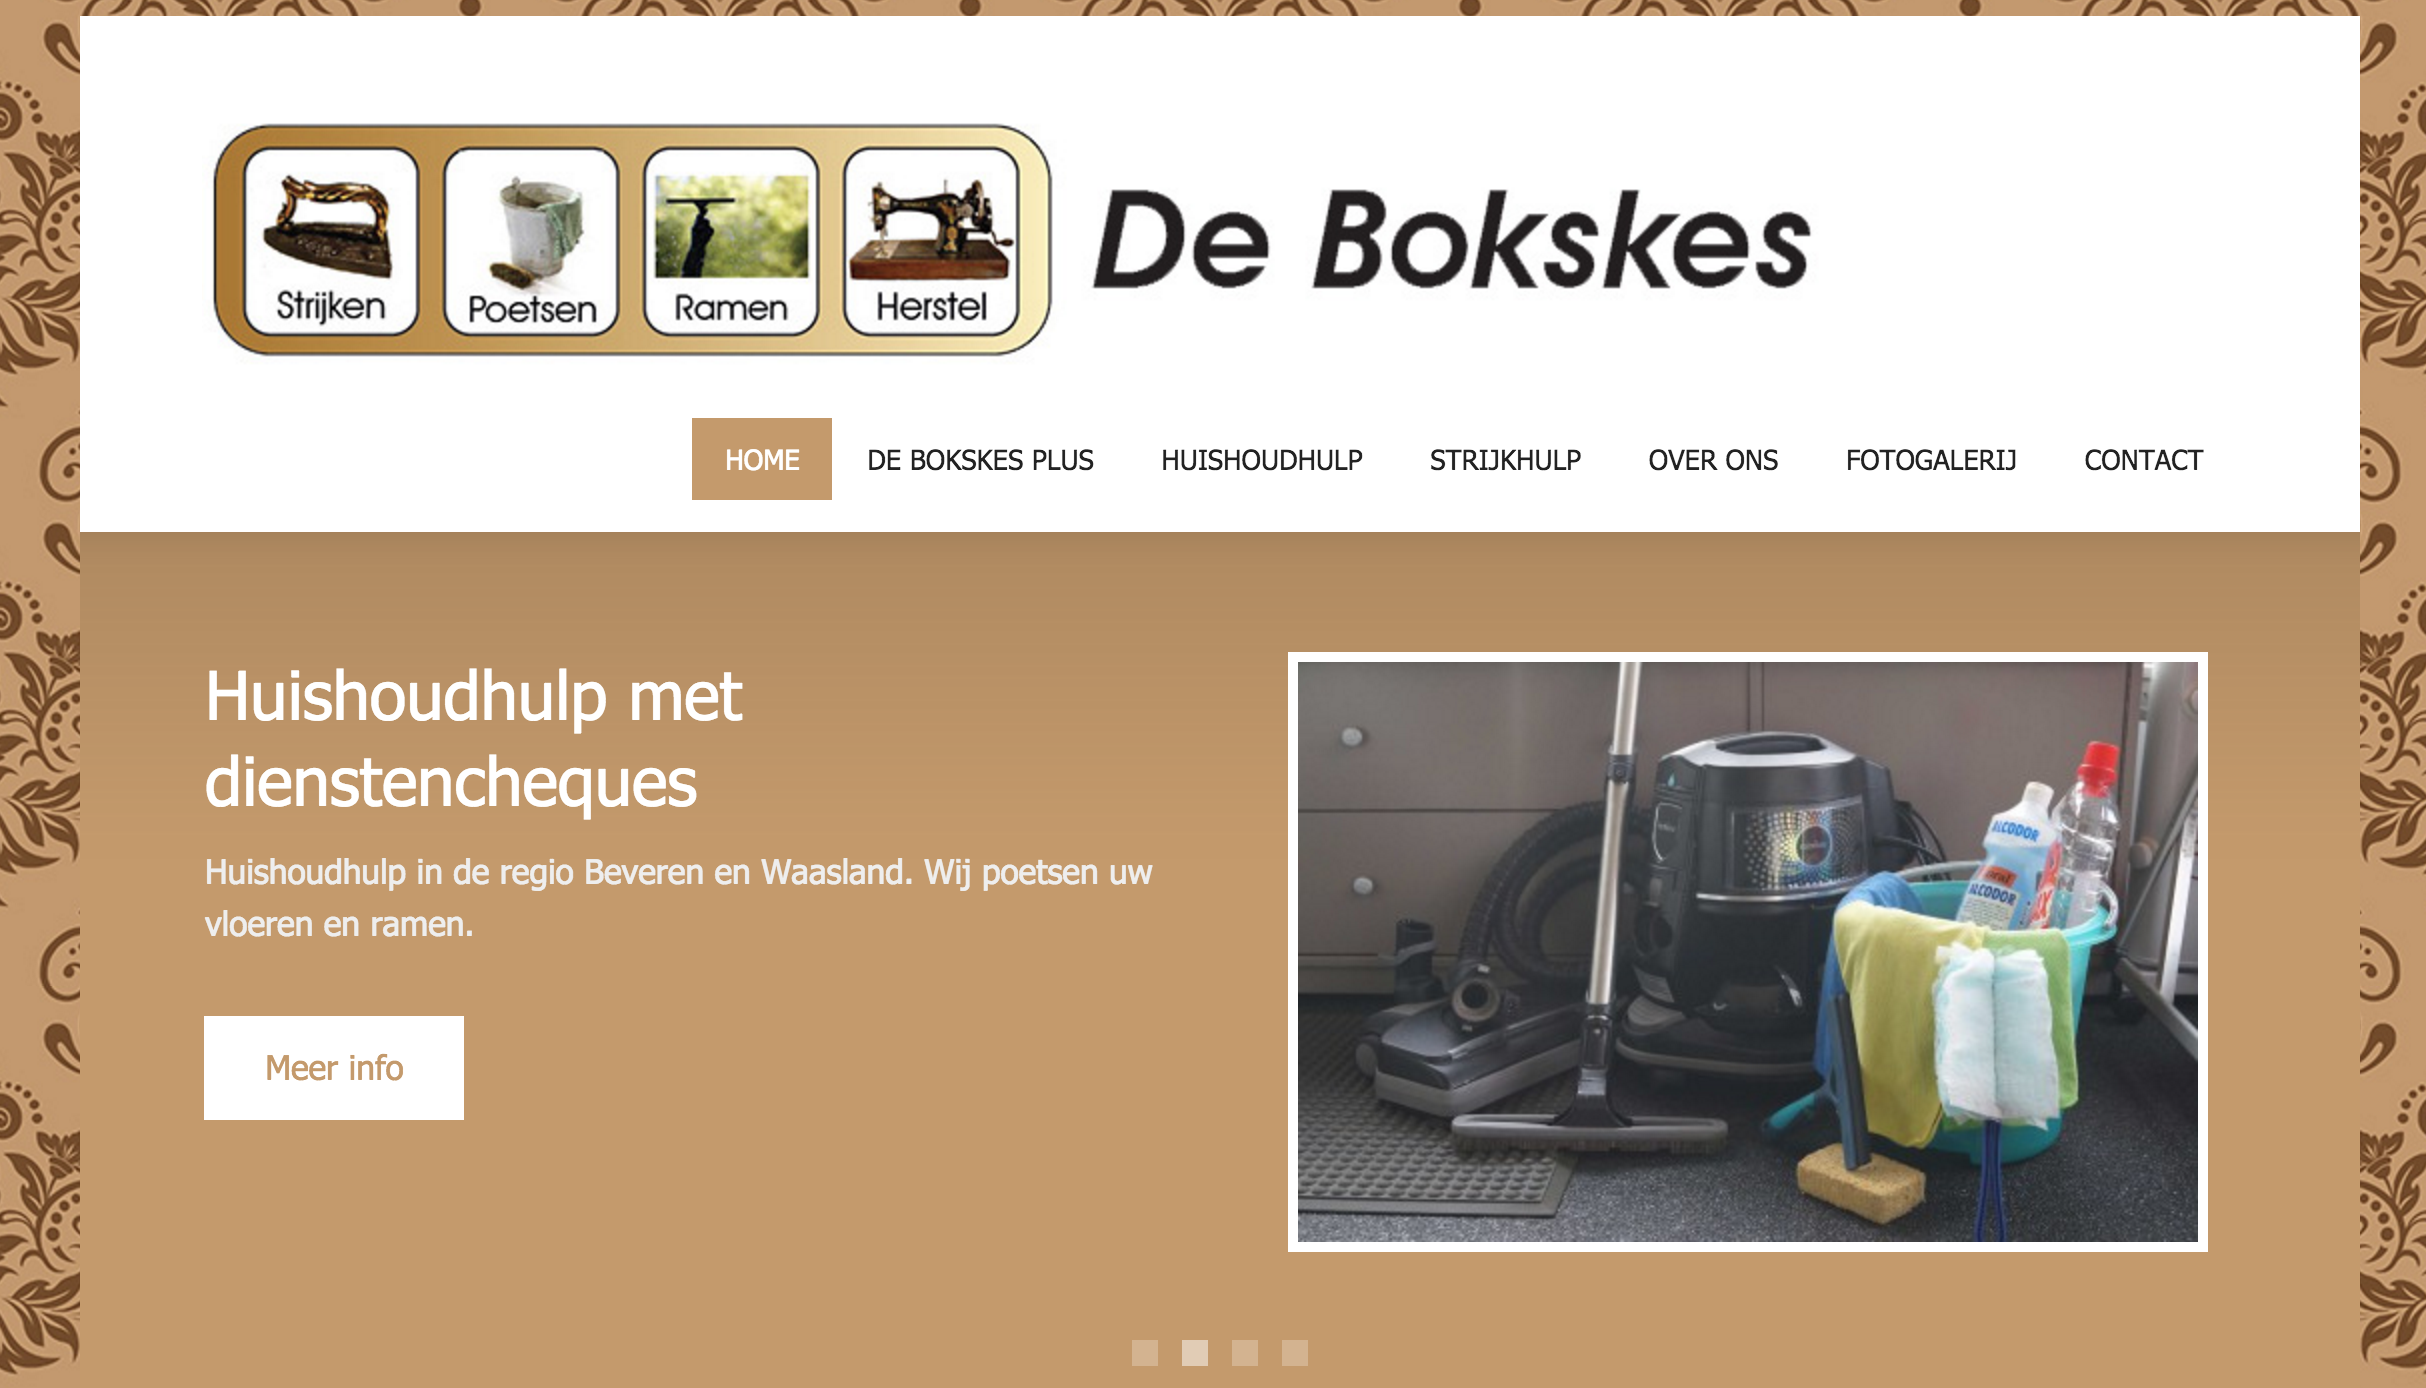 debokskes.be